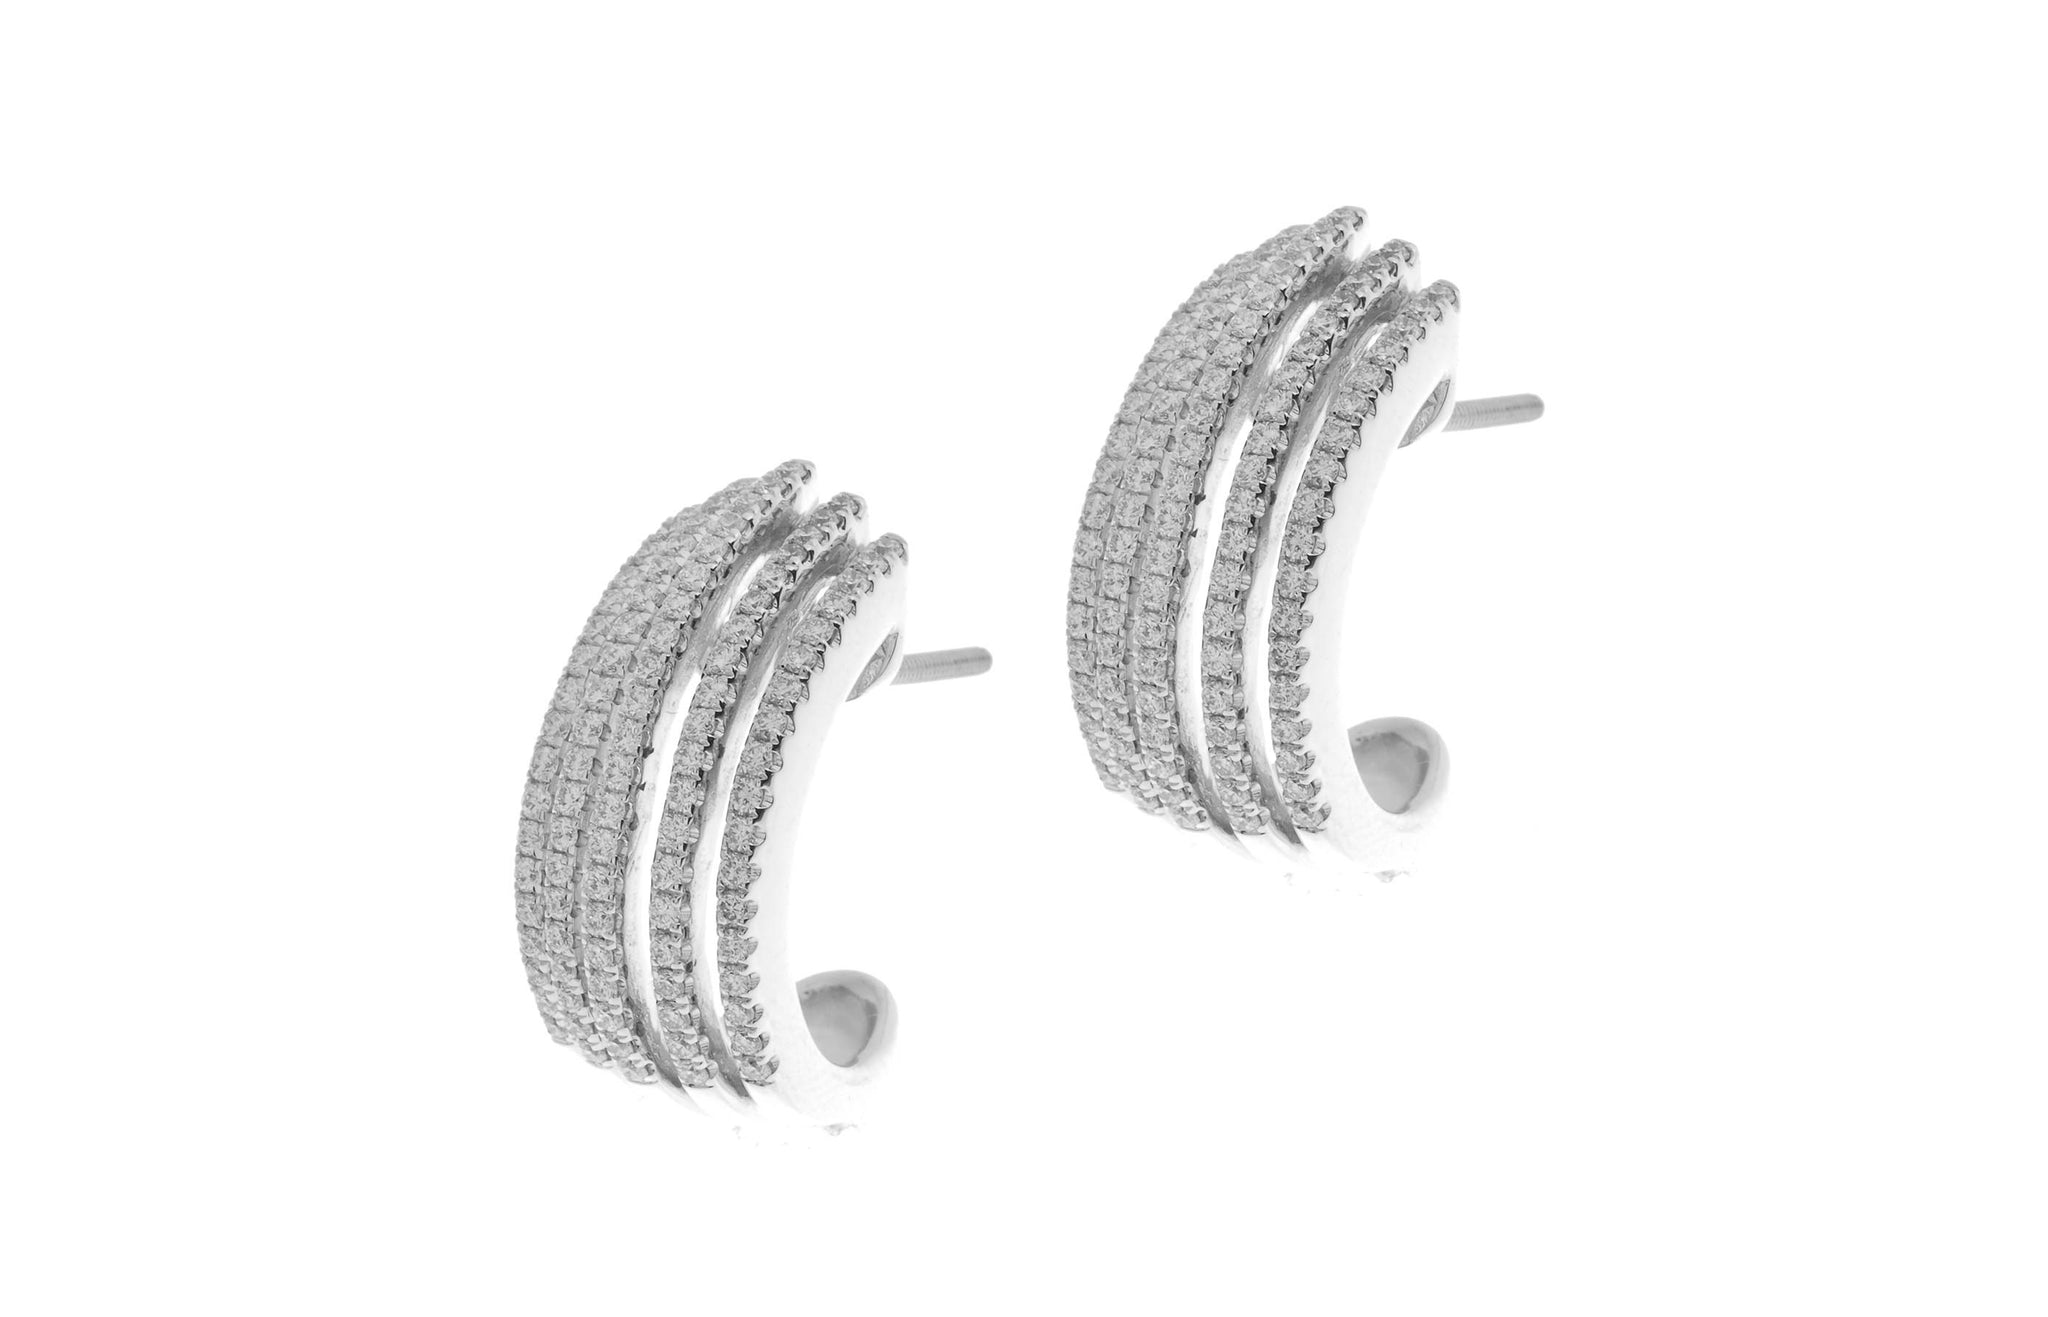 18ct White Gold 0.95ct Diamond Half Hoop Earrings E23959C-11